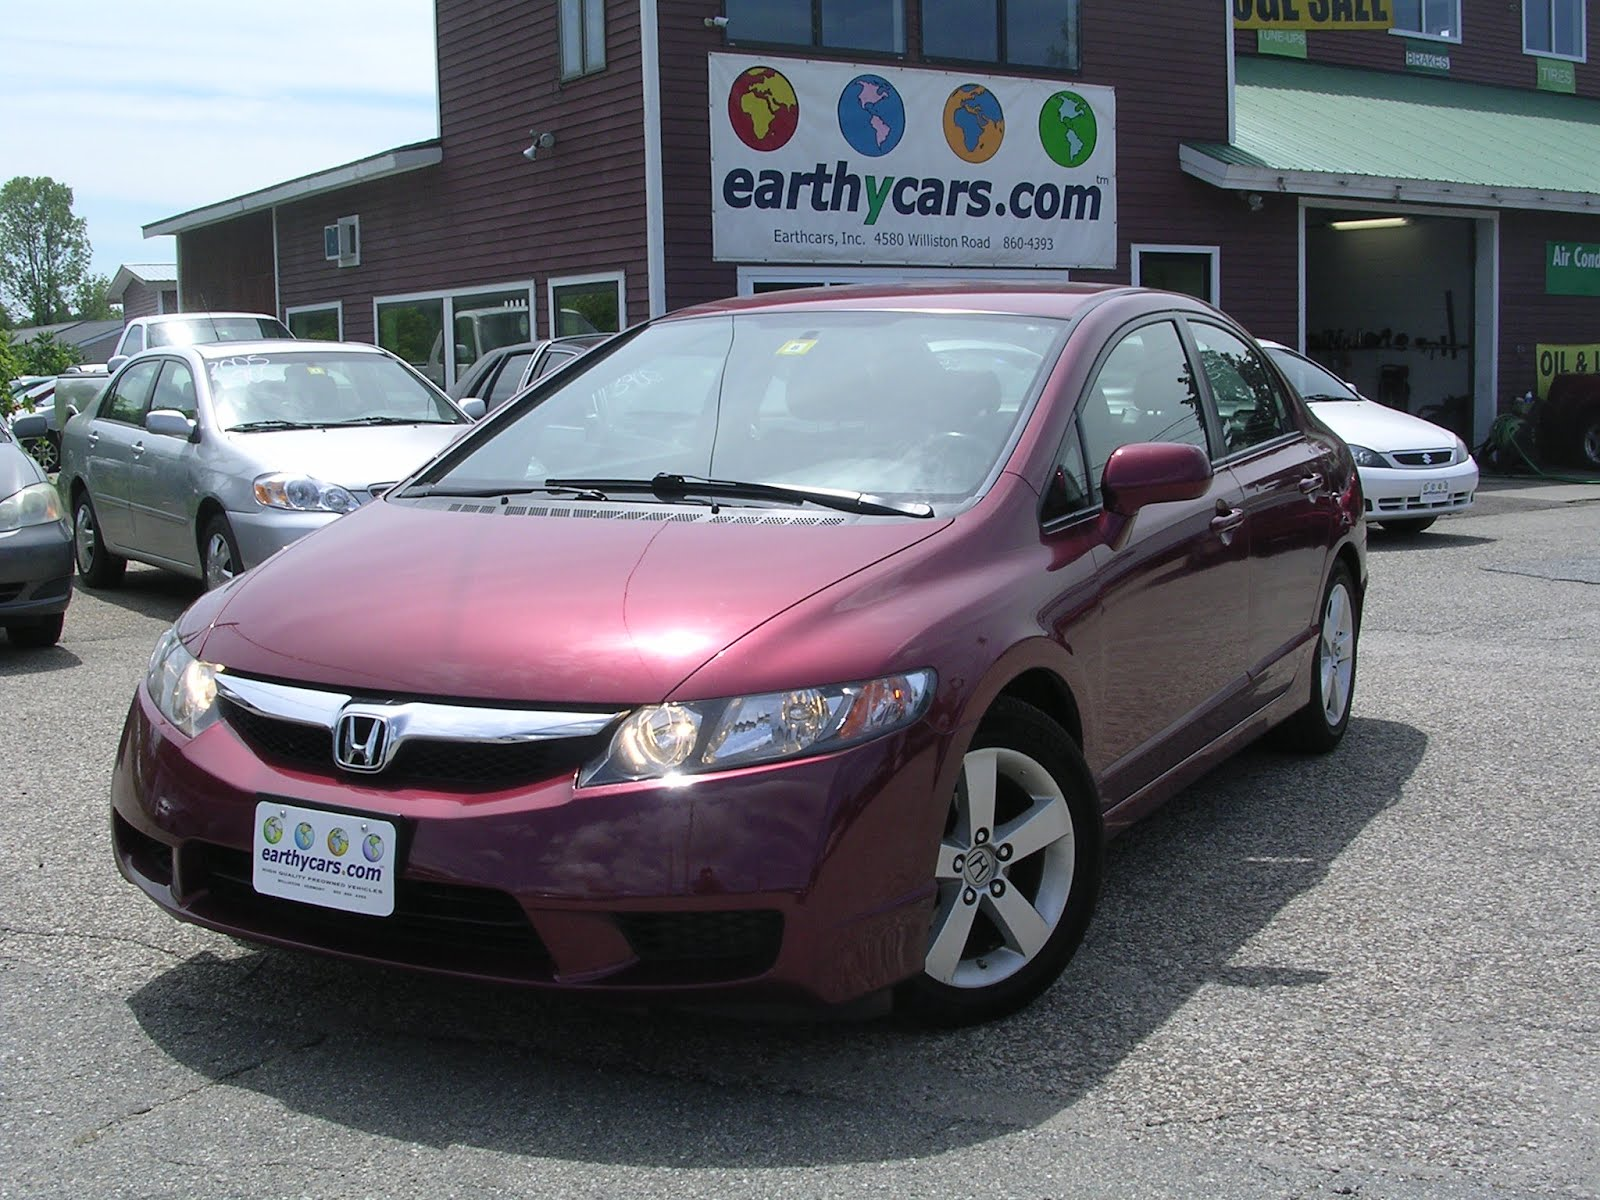 Earthy Cars Blog  EARTHY CAR OF THE WEEK  2010 Red Honda Civic LX